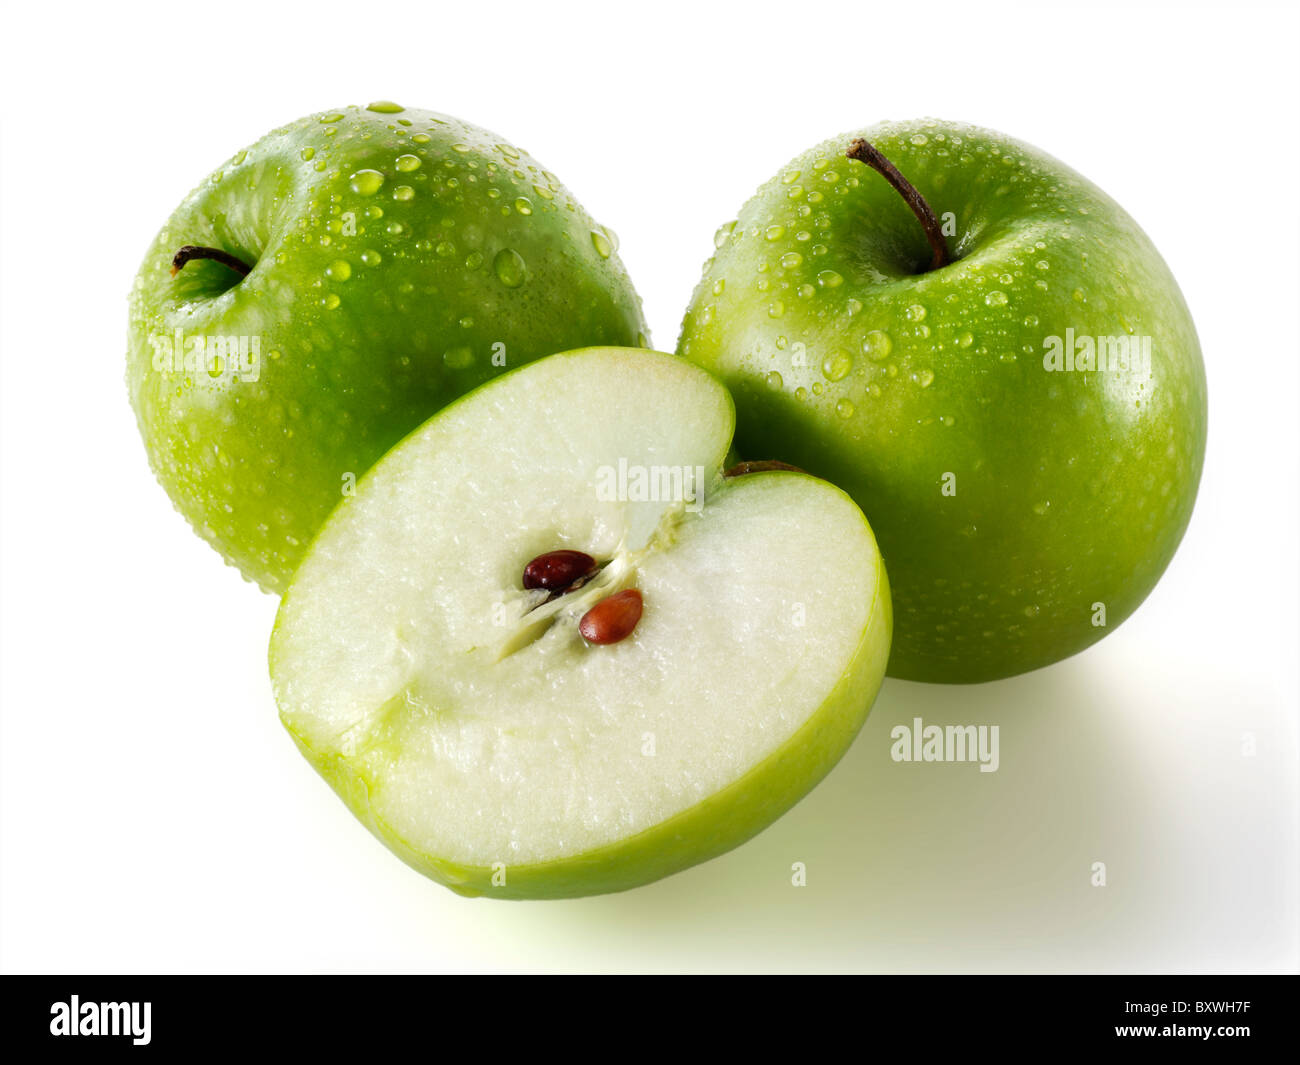 Whole & cut Granny Smiths apples - Stock Image